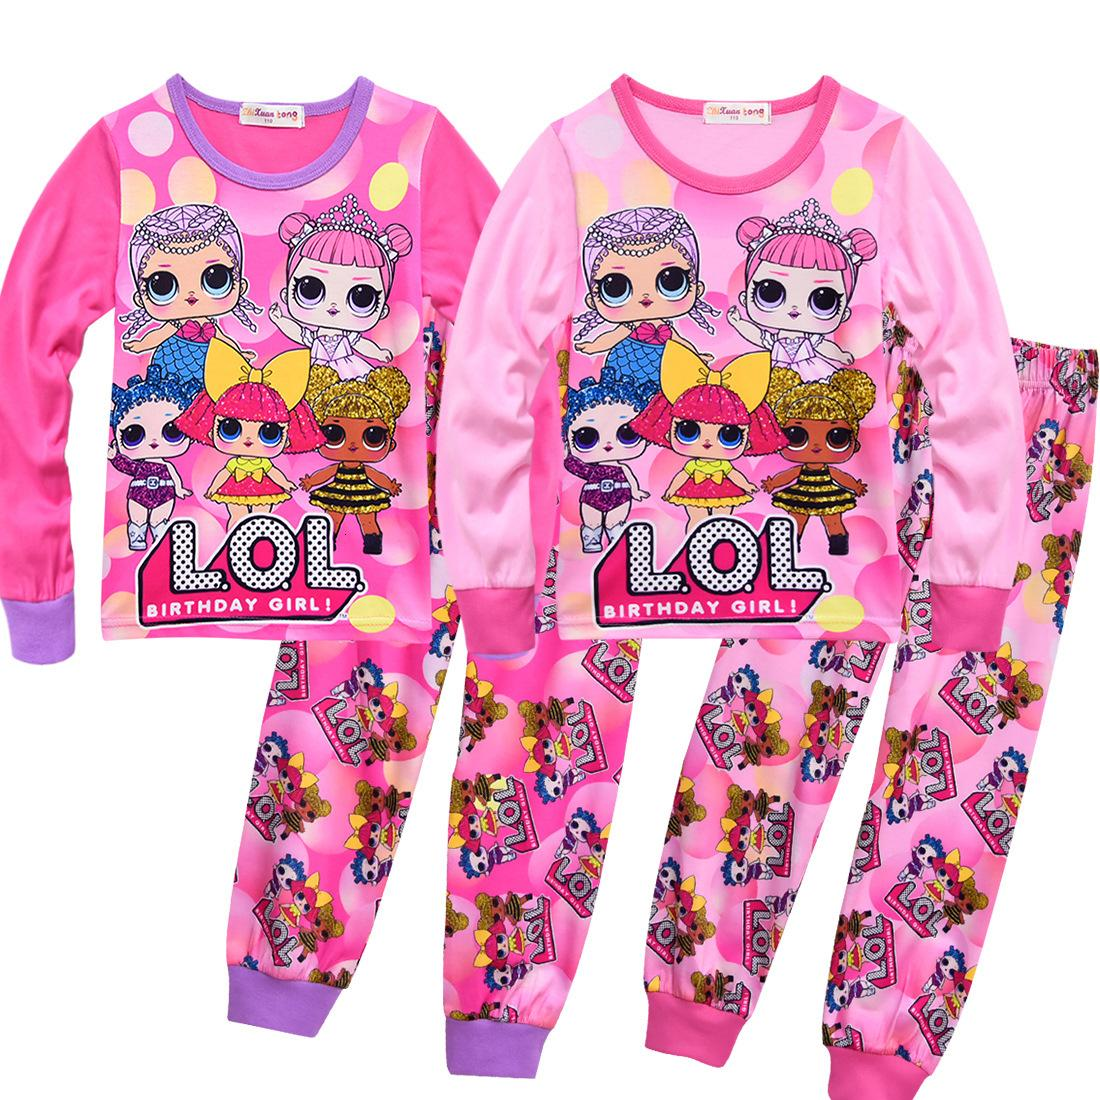 New cartoon doll children's LOl home service two-piece baby girl pajamas setMX190921